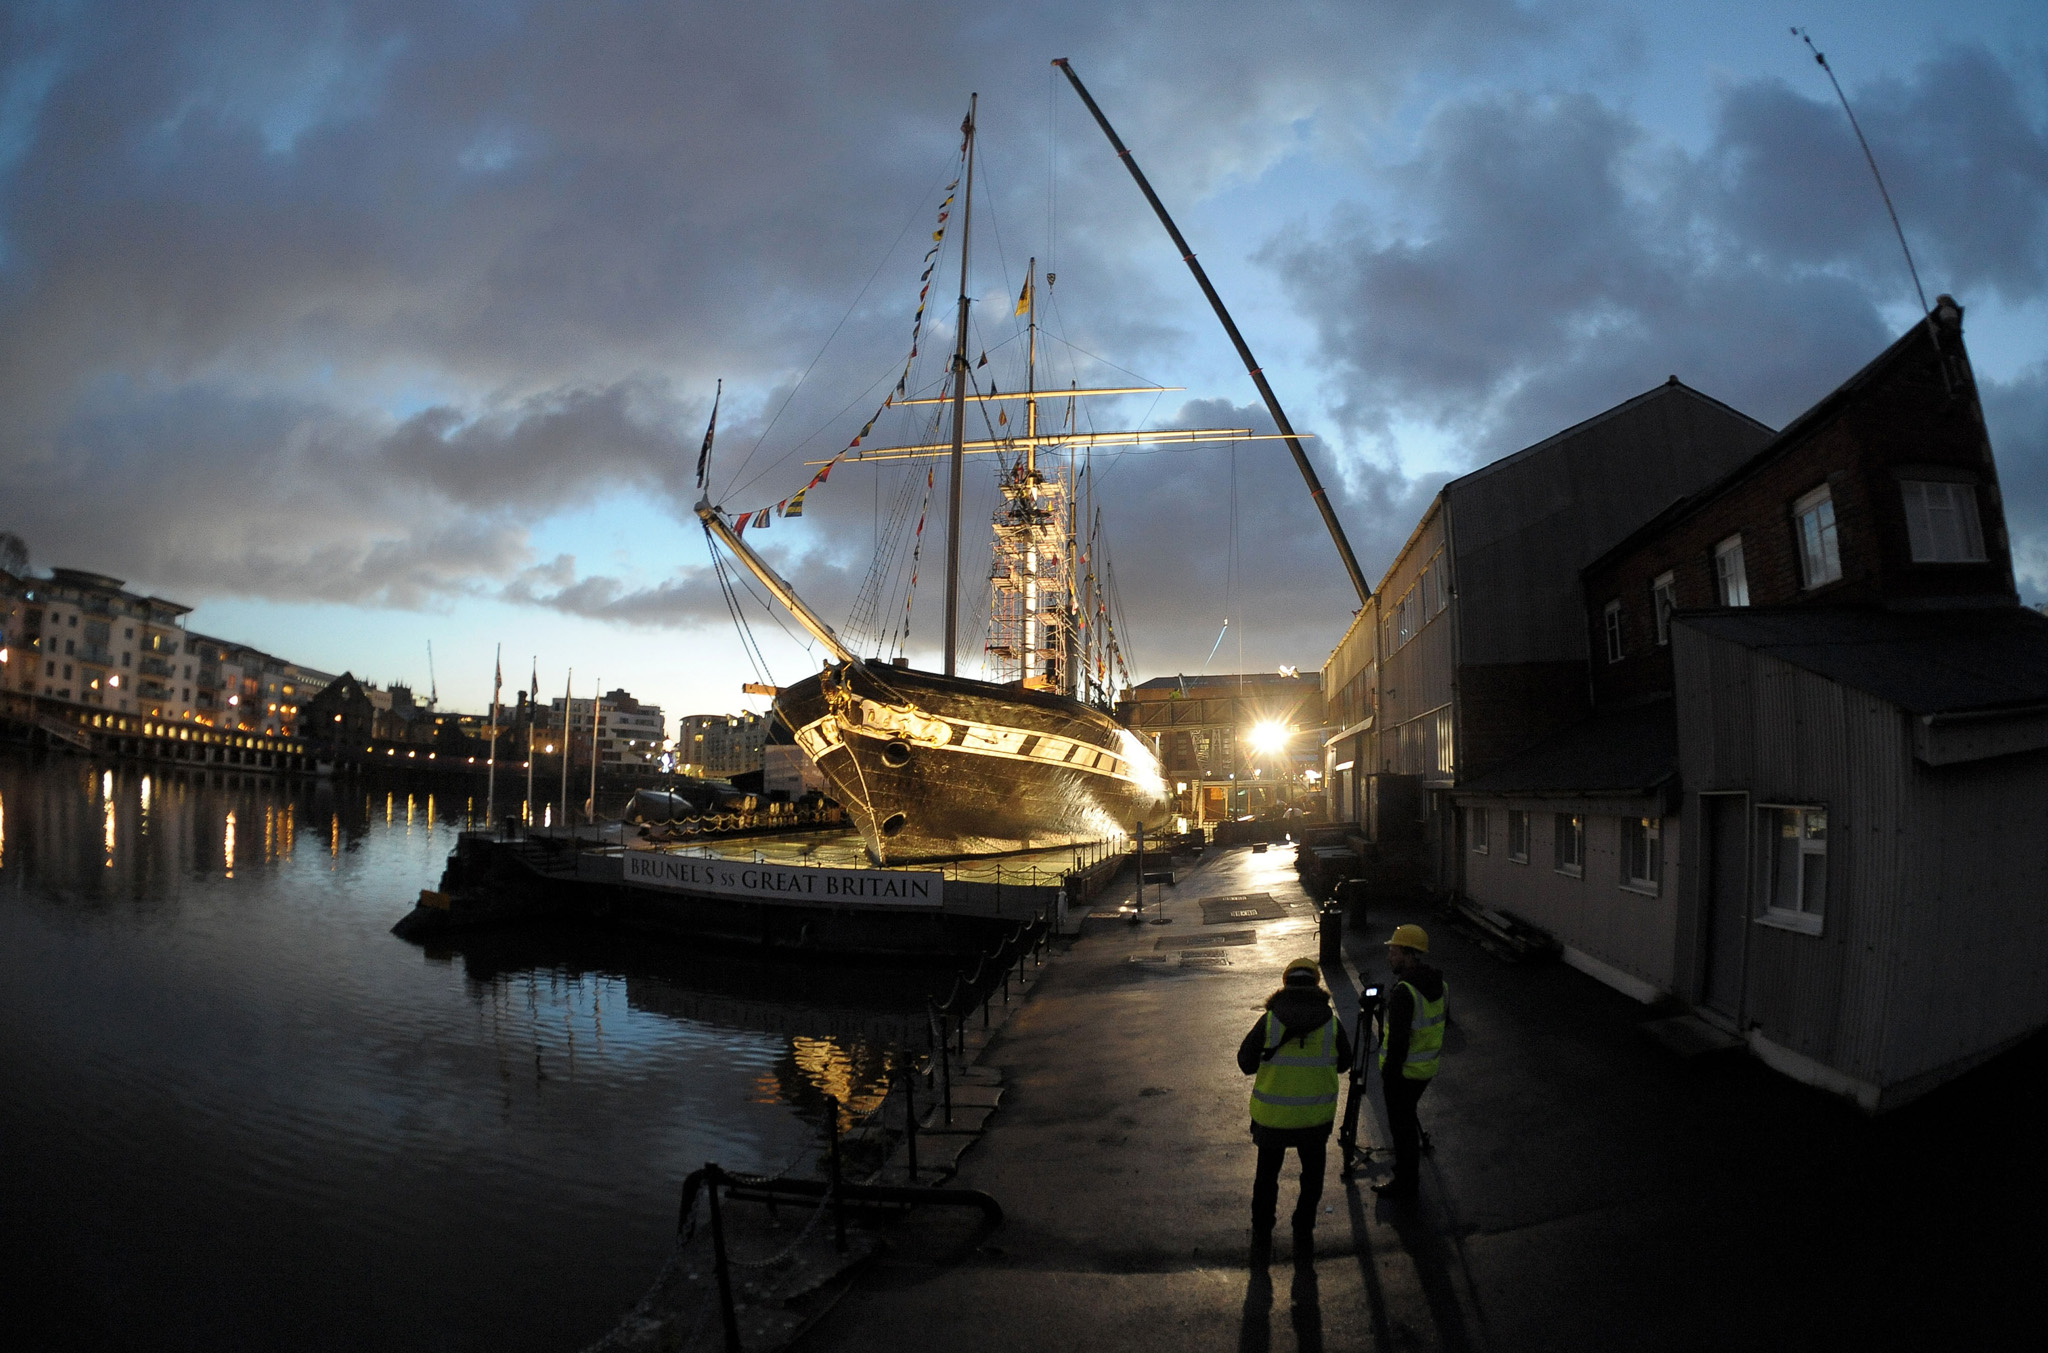 SS Great Britain ...The 25 metre long mainyard is lifted into place on Brunel's SS Great Britain in Bristol as preparations begin for the attraction's Go Aloft that will allow the public to climb the rigging and out onto the mainyardl. PRESS ASSOCIATION Photo. Picture date: Friday December 20, 2013. Visitors will be able to step into the shoes of a Victorian sailor and be able to scale the rigging for a unique view of Bristol. See PA story SEA Brunel. Photo credit should read: Tim Ireland/PA Wire